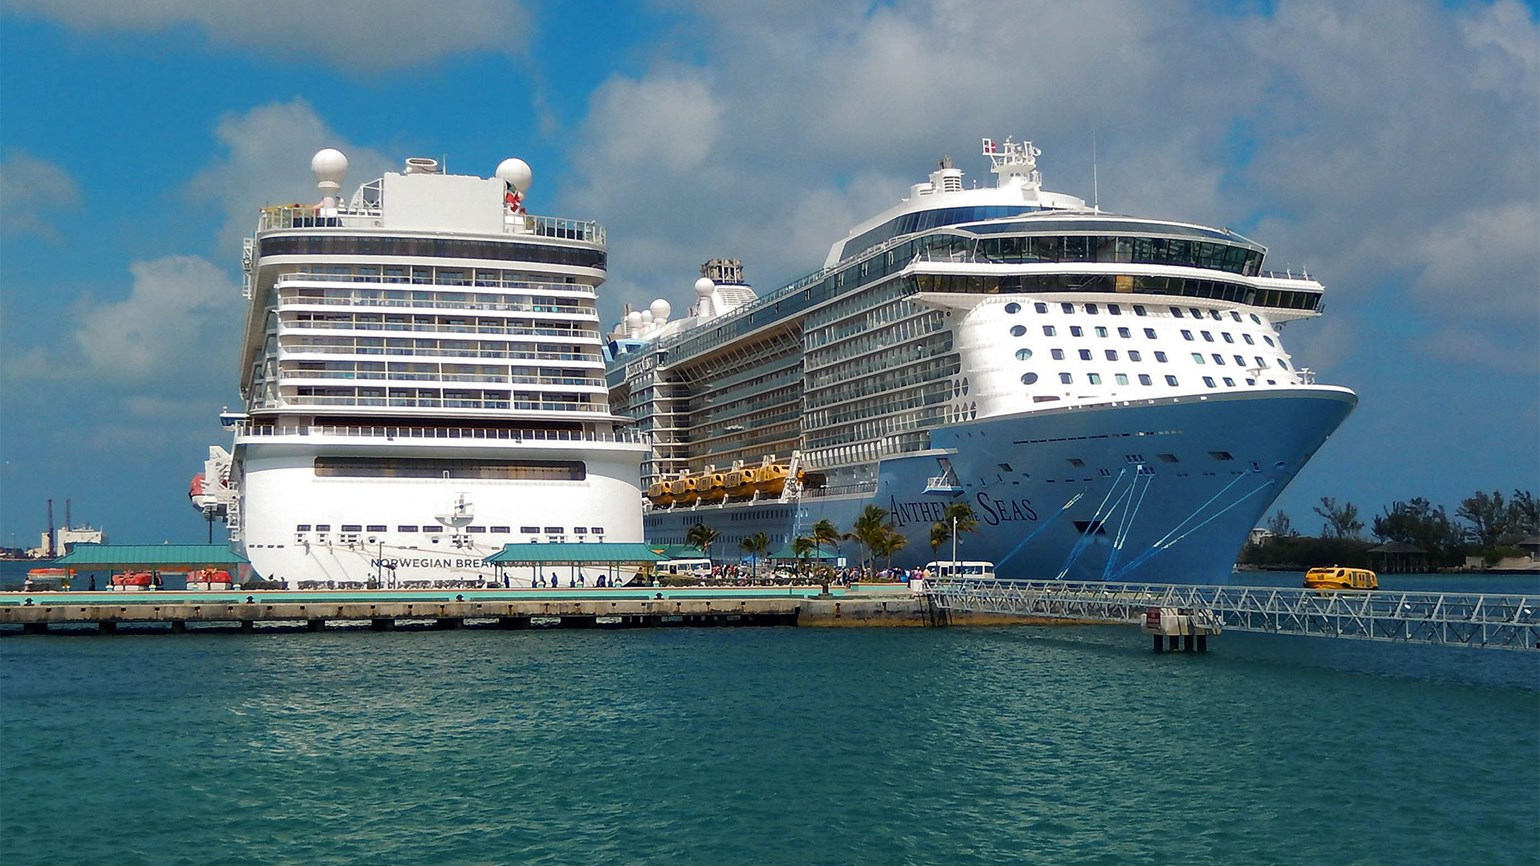 With some Caribbean ports knocked out, cruise lines make wholesale changes